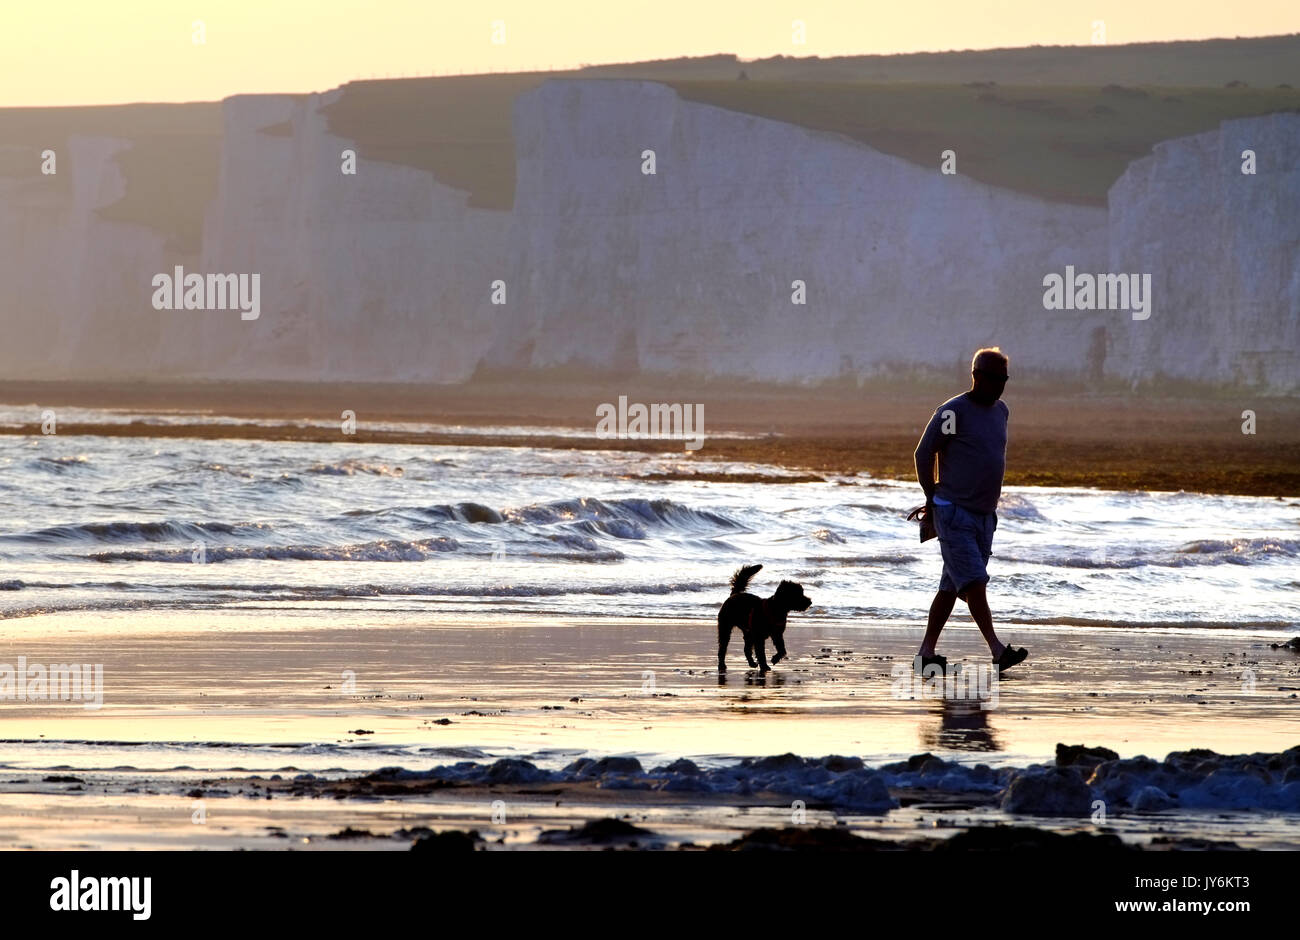 Man and his dog walking on the beach near the iconic Seven Sisters chalk cliffs, East Sussex. Stock Photo